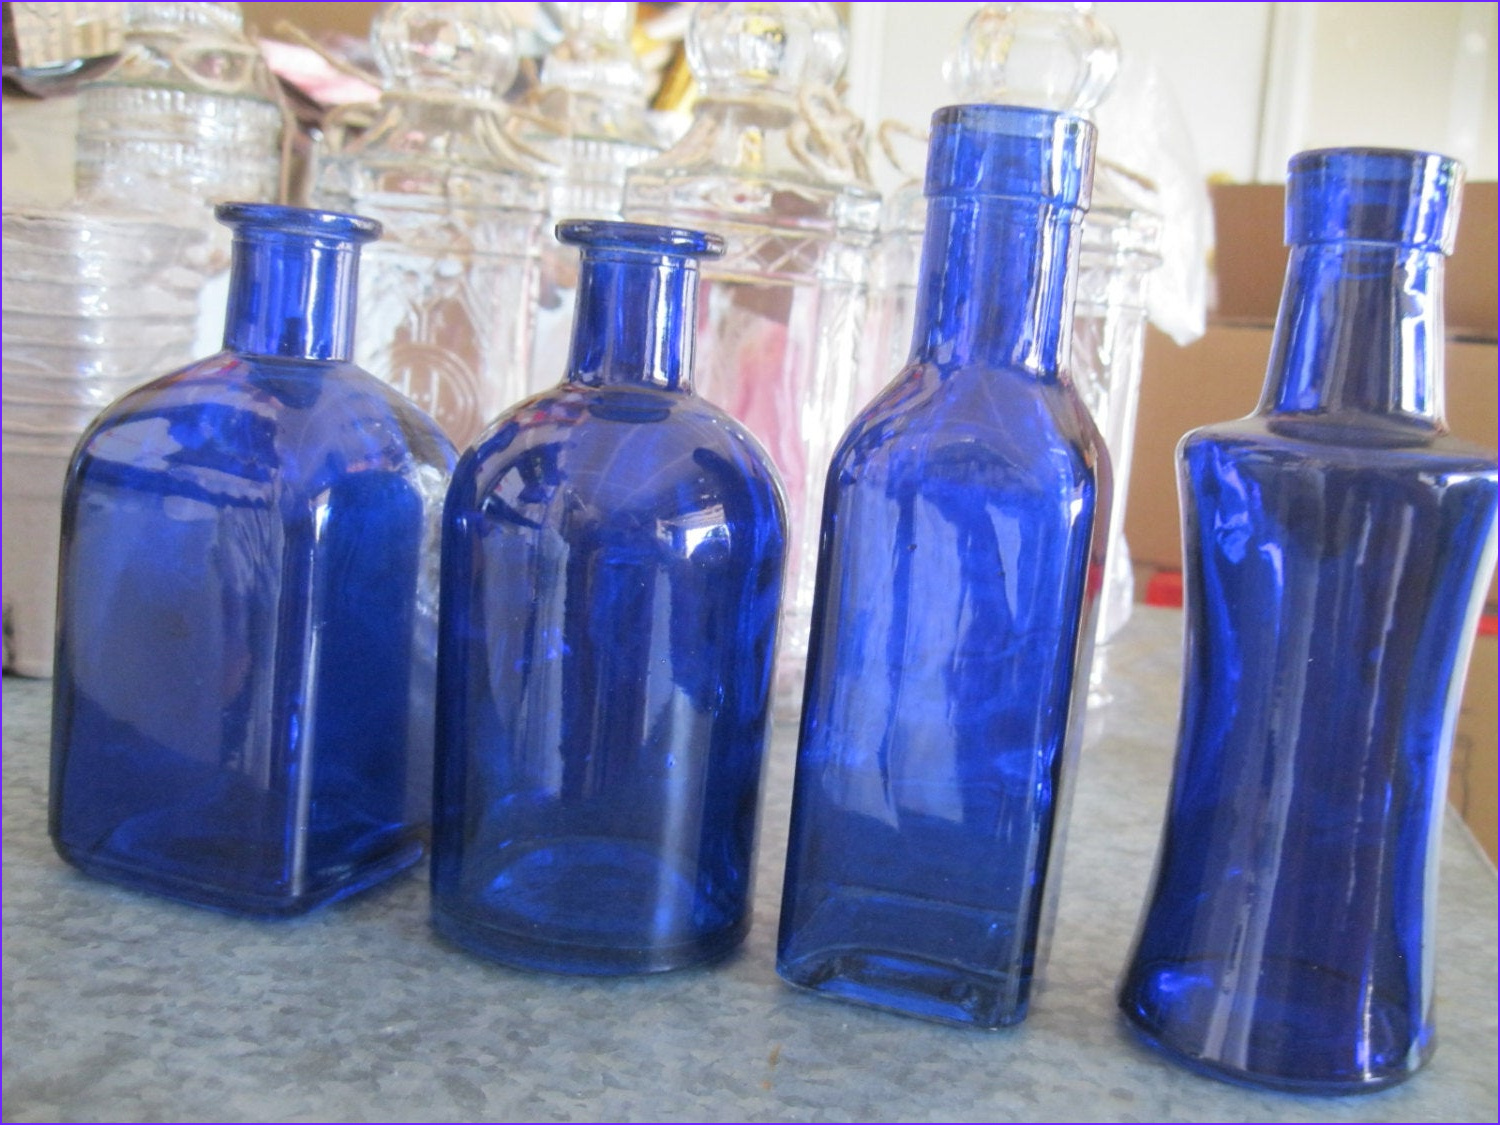 Coloring Glass Bottles Beautiful Images 4 Cobalt Blue Decorative Colored Glass Bottles by